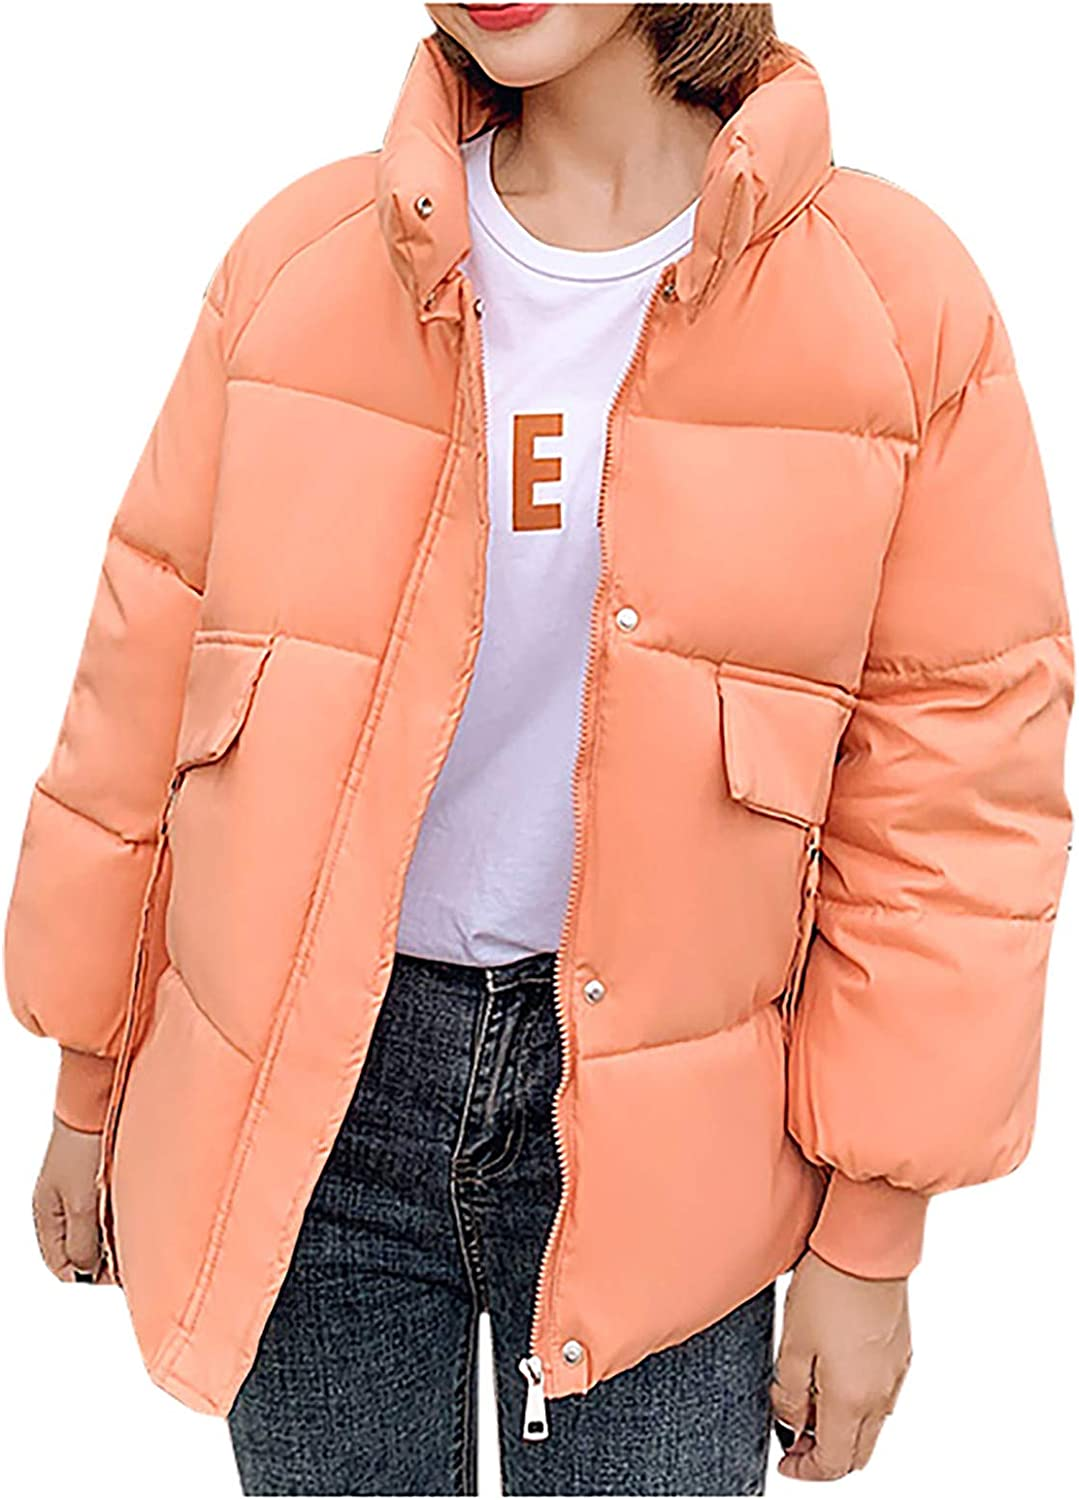 UpdateClassic Womens Winter Coats Color New trend rank item Thicken Solid Pu